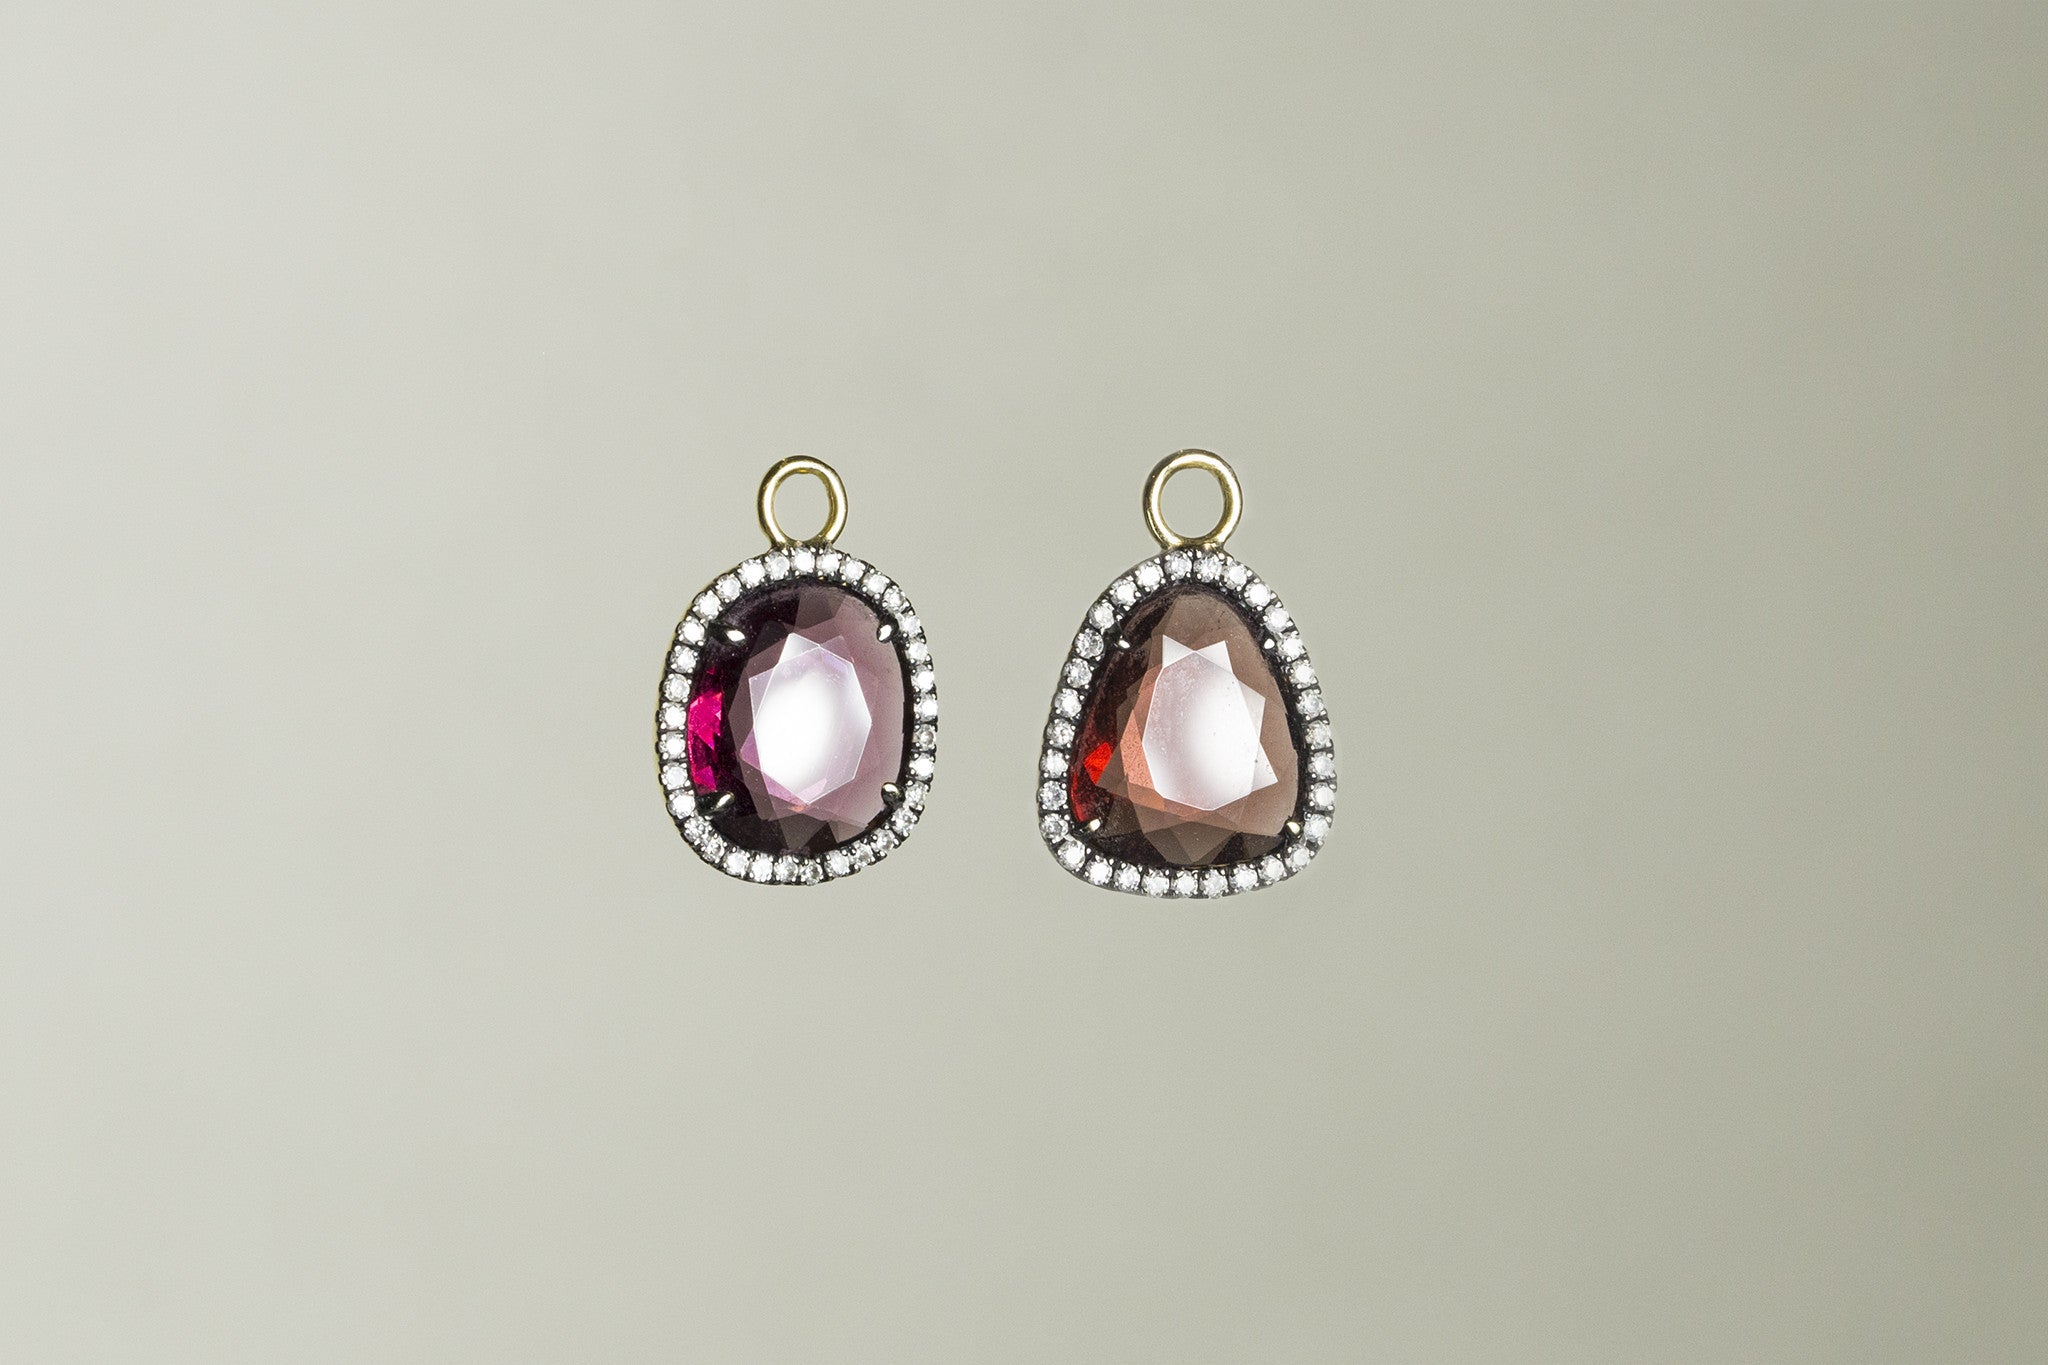 Ikuko's brilliant garnet earring charms with orgasmic diamonds set around, also sold separately